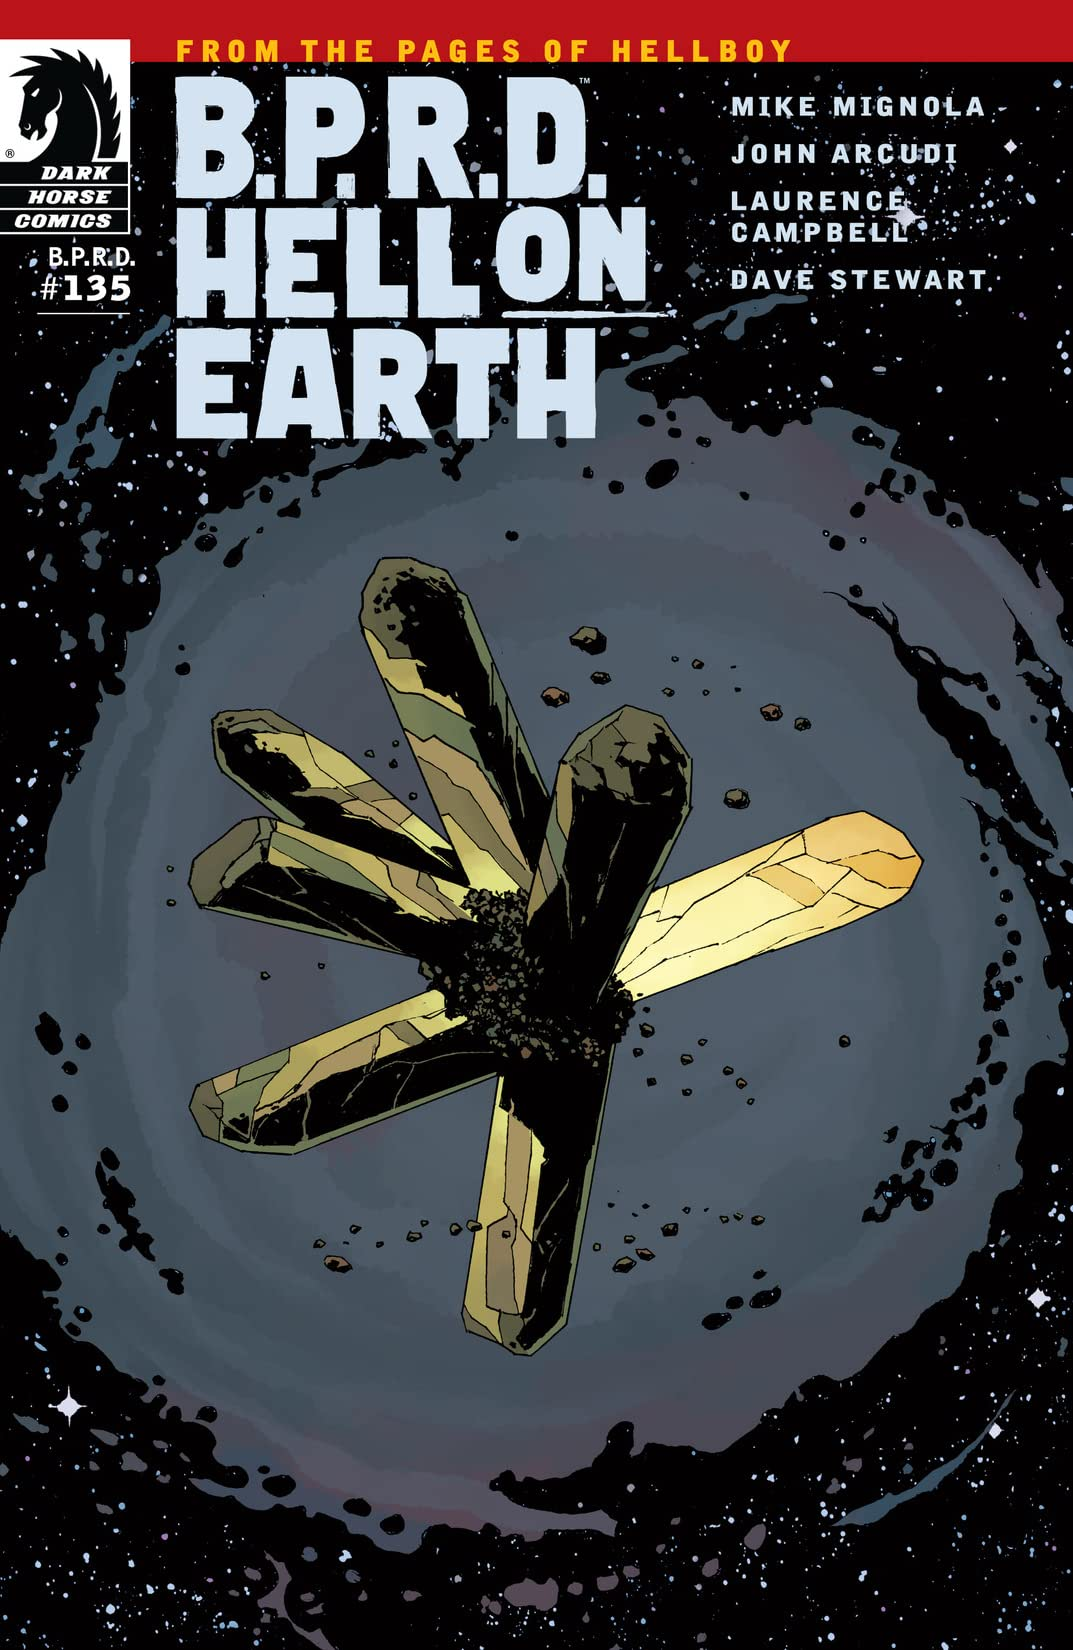 B.P.R.D.: Hell on Earth #135